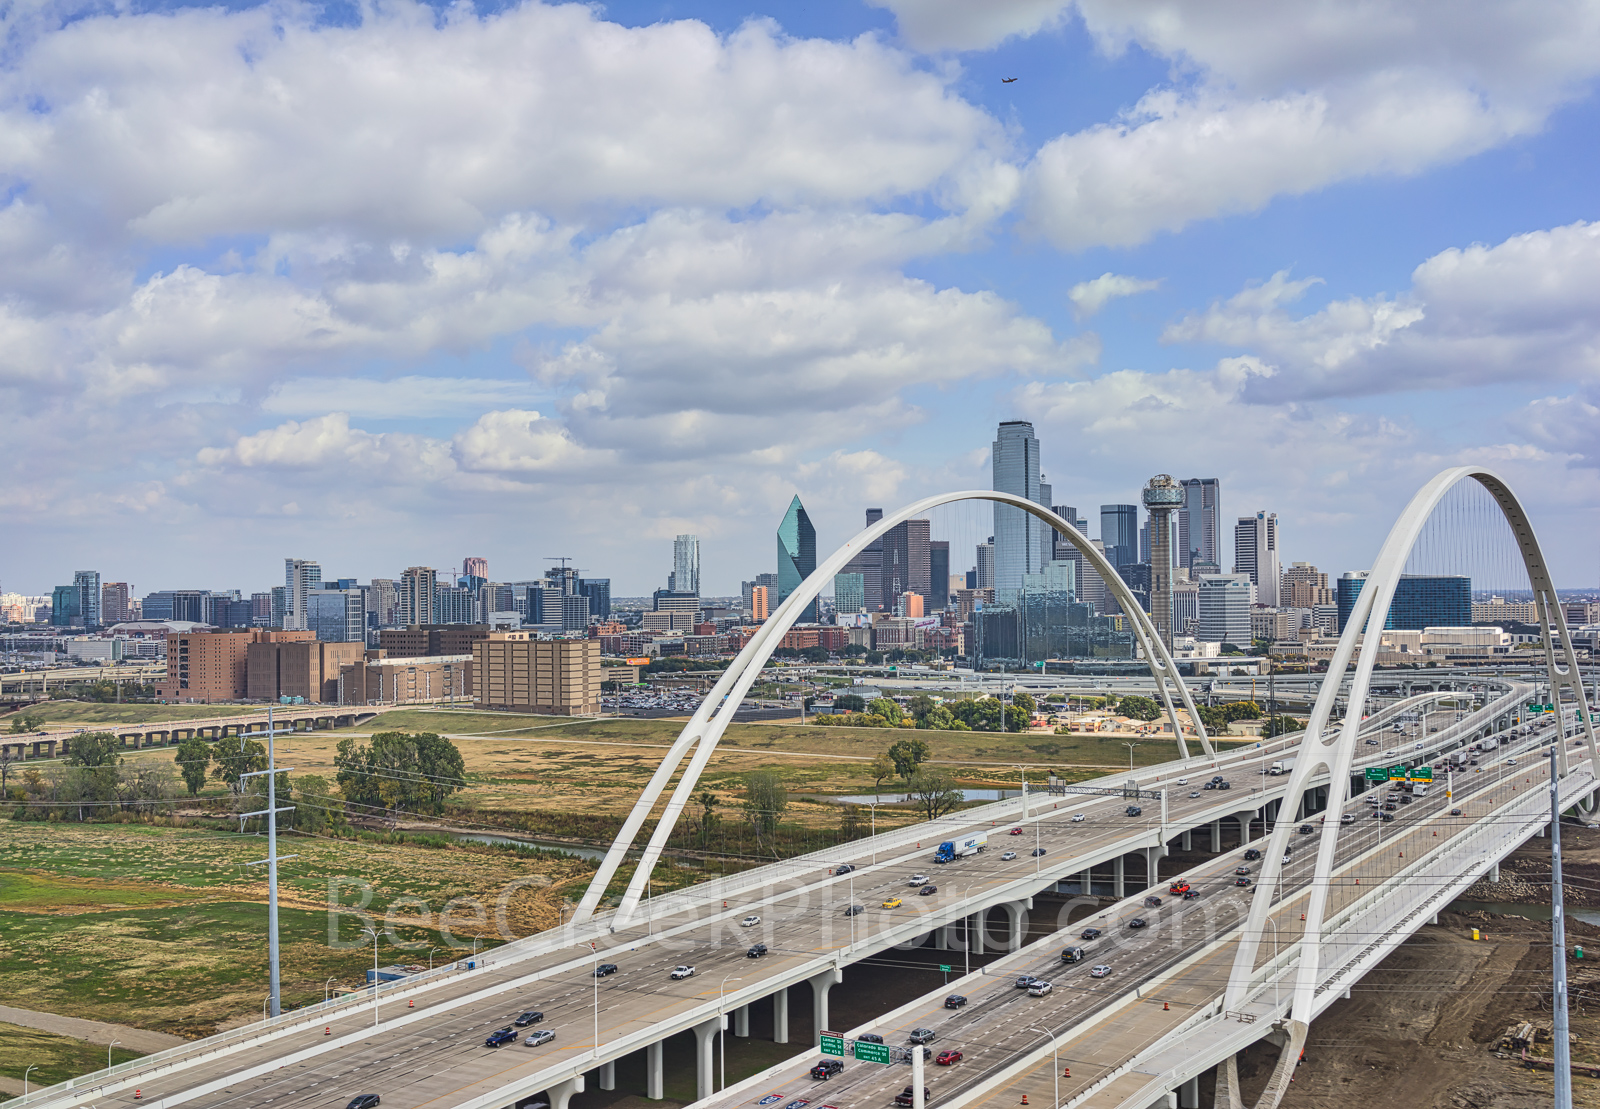 Dallas skyline, McDermott Bridge, downtown, puffy white clouds, blue sky, dallas skyline stock photos, Margaret McDermott Bridge,, photo